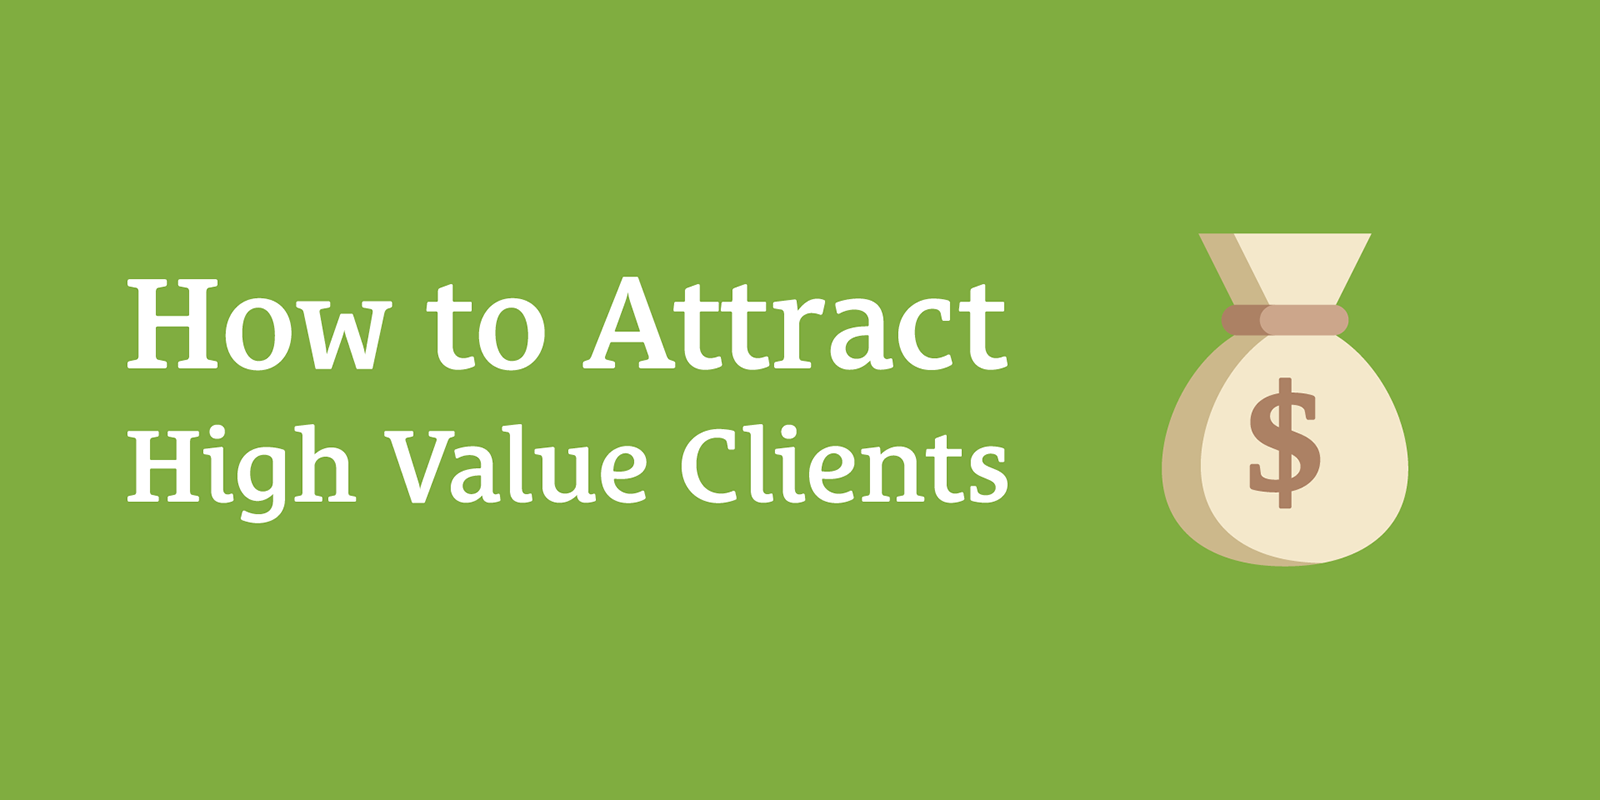 How to Attract High Value Clients